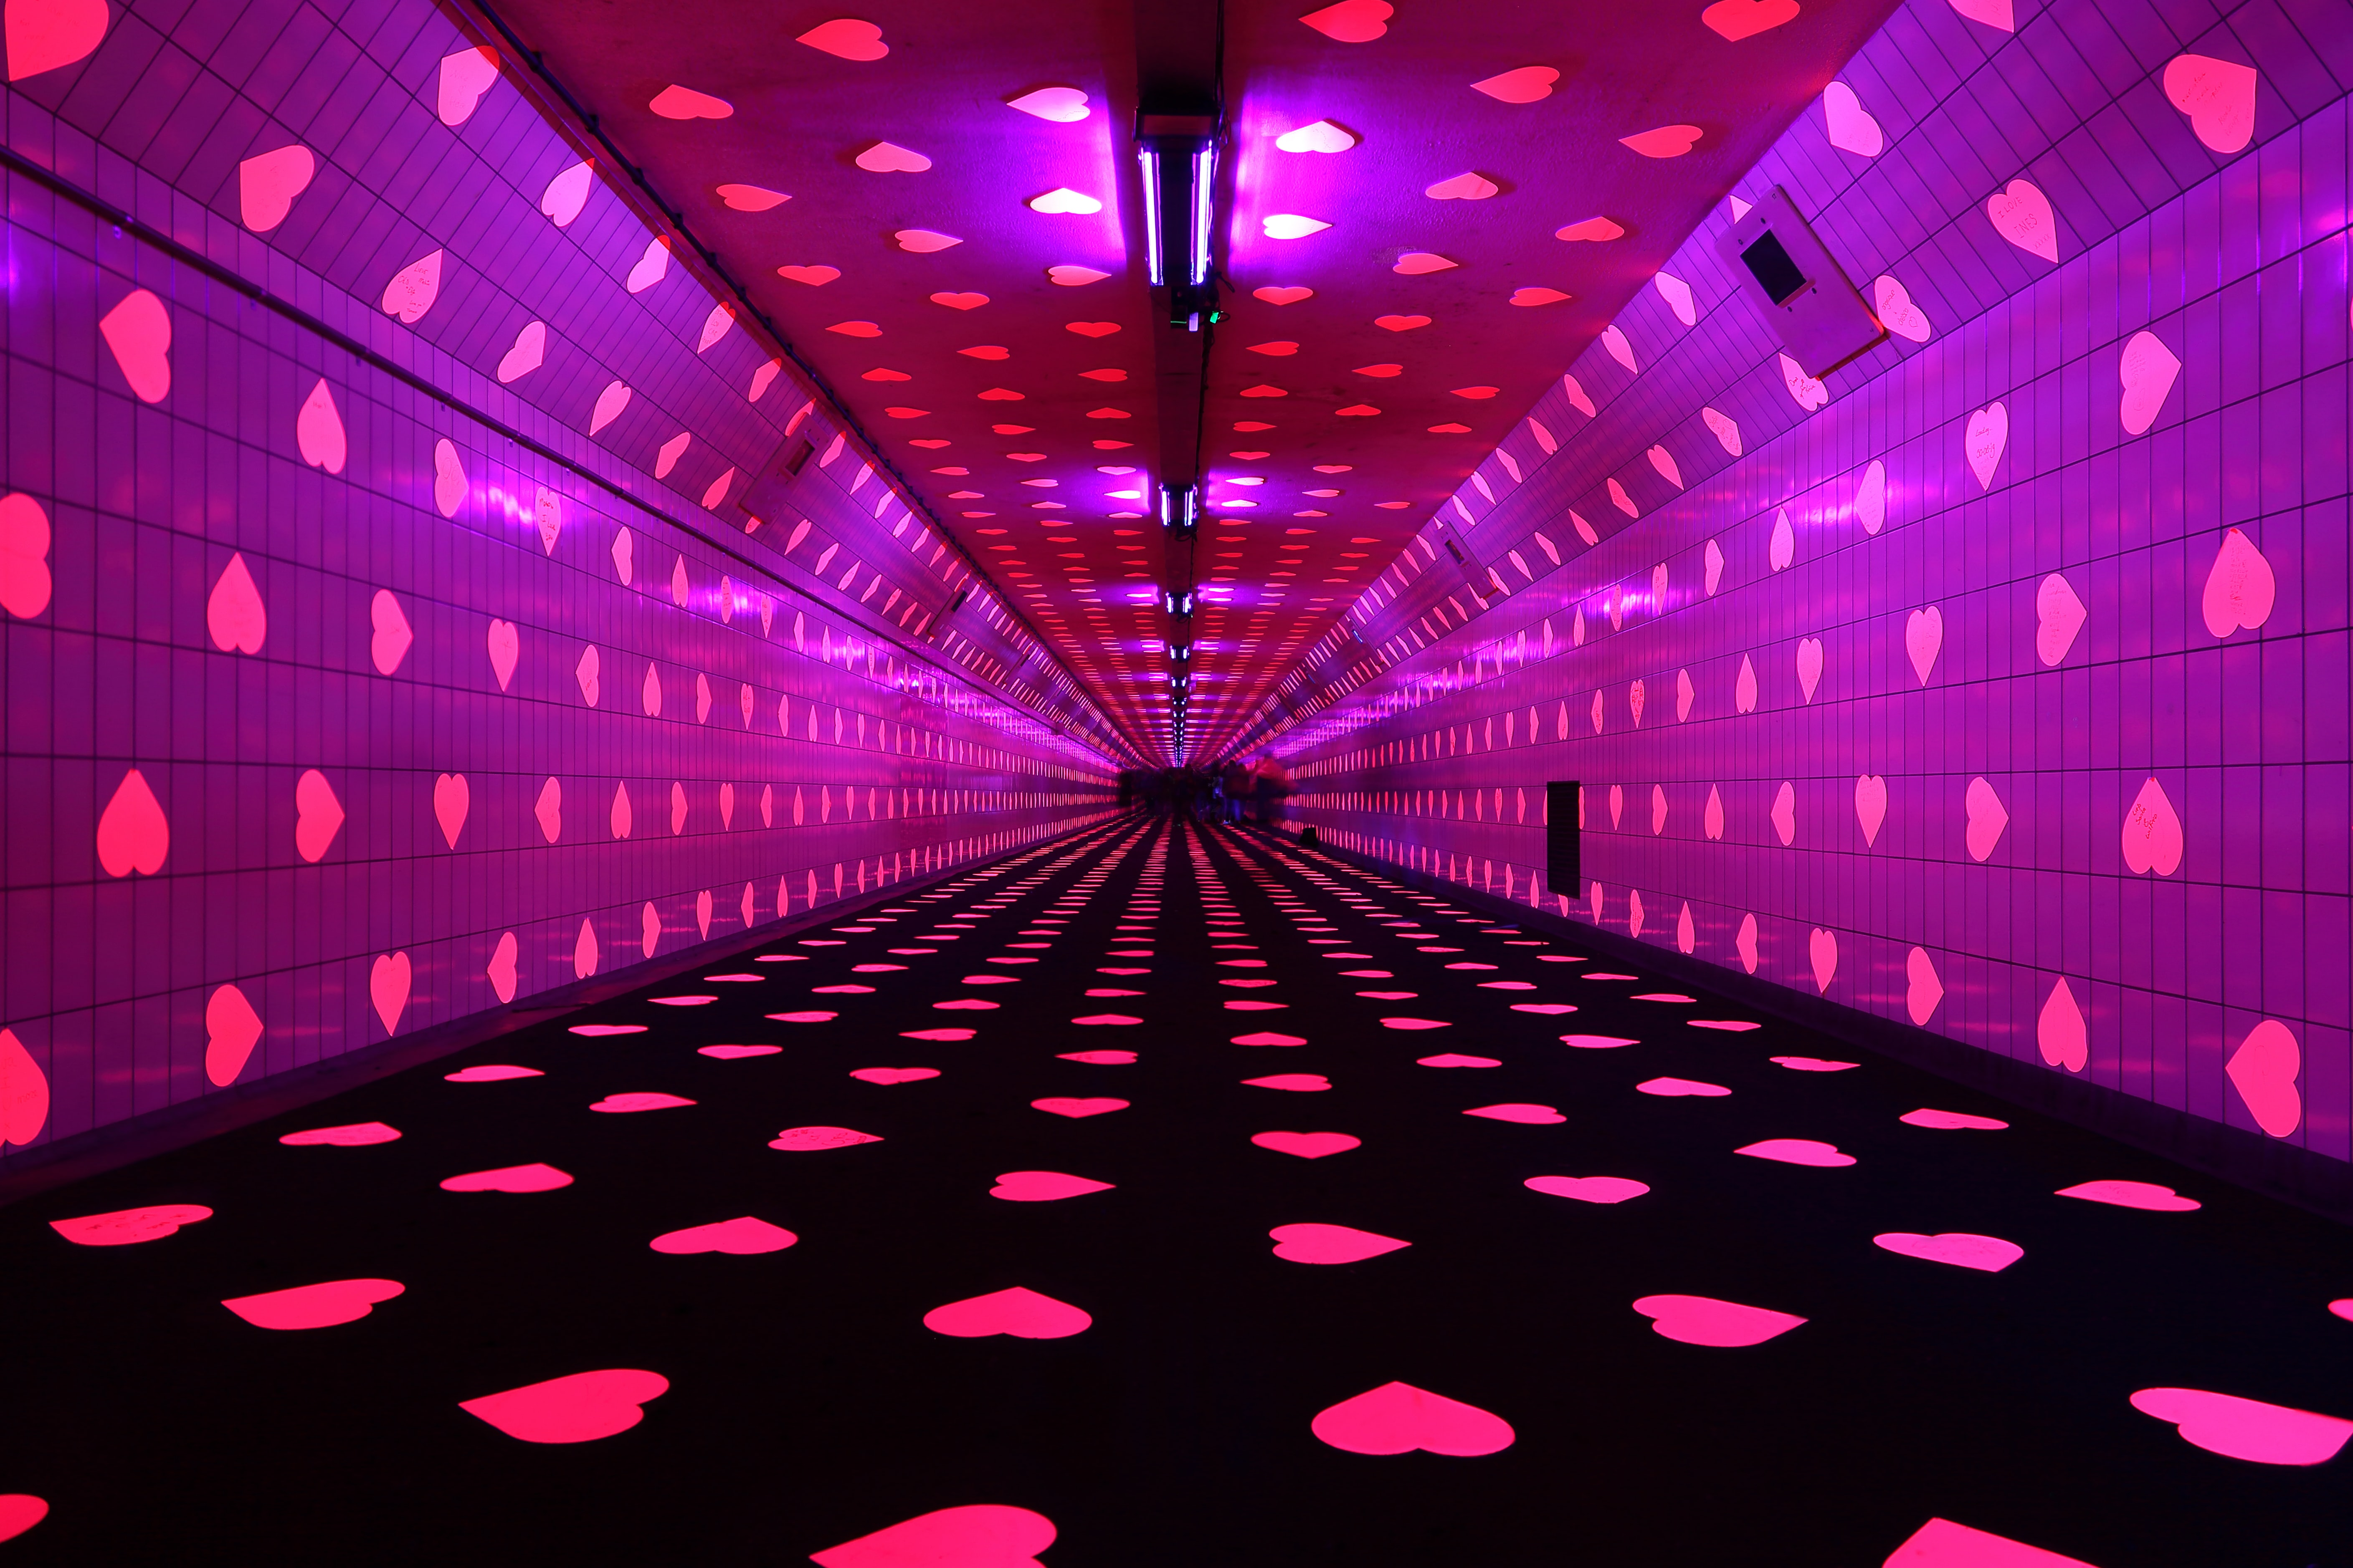 Dark tunnel with pink hearts on the wall